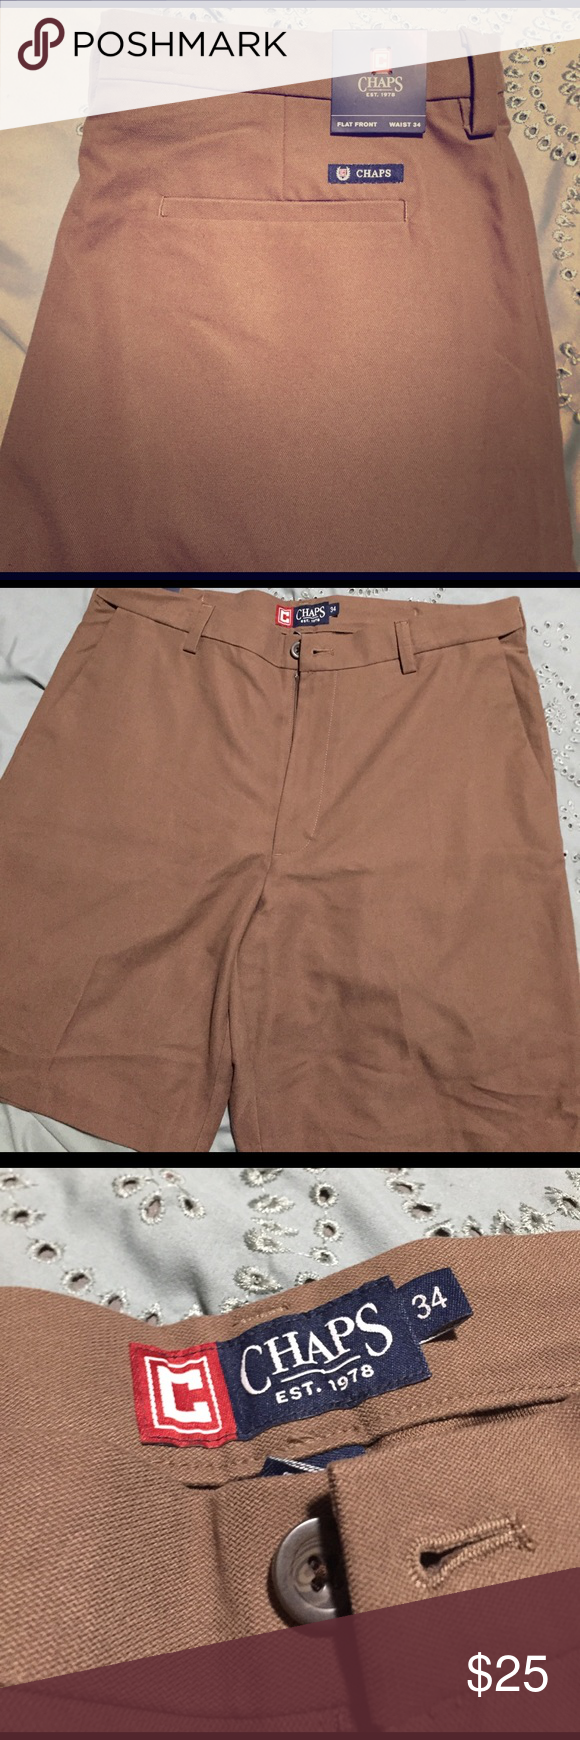 19 Lovely Chaps Flat Front Shorts